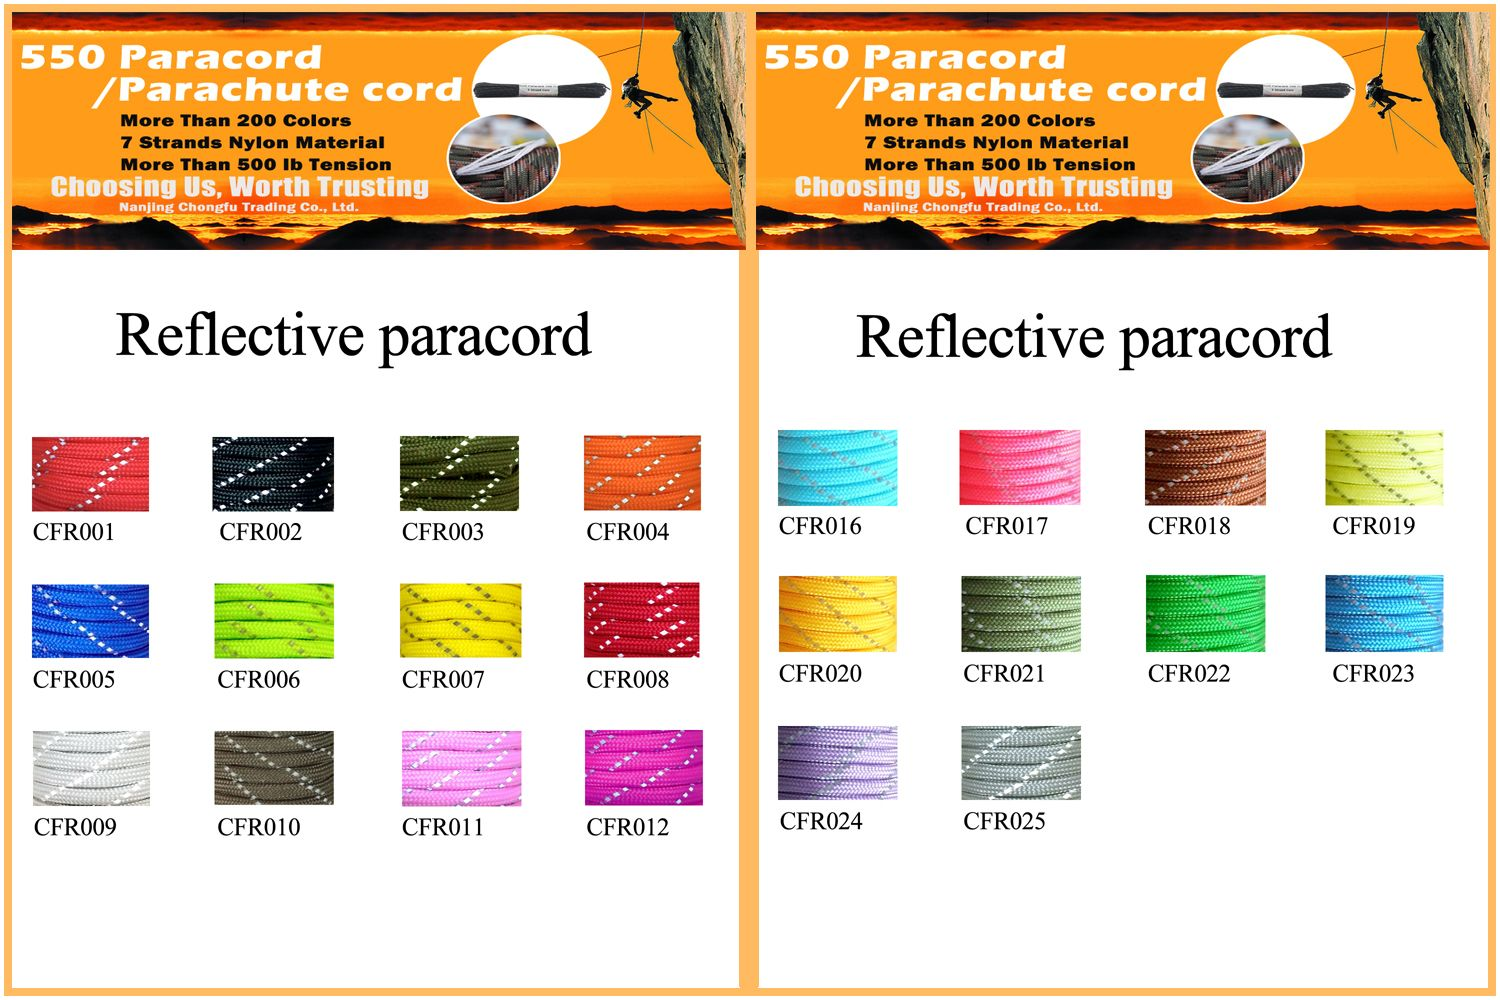 Reflective 550 Paracord Color Chart 550 Paracord Paracord Reflective